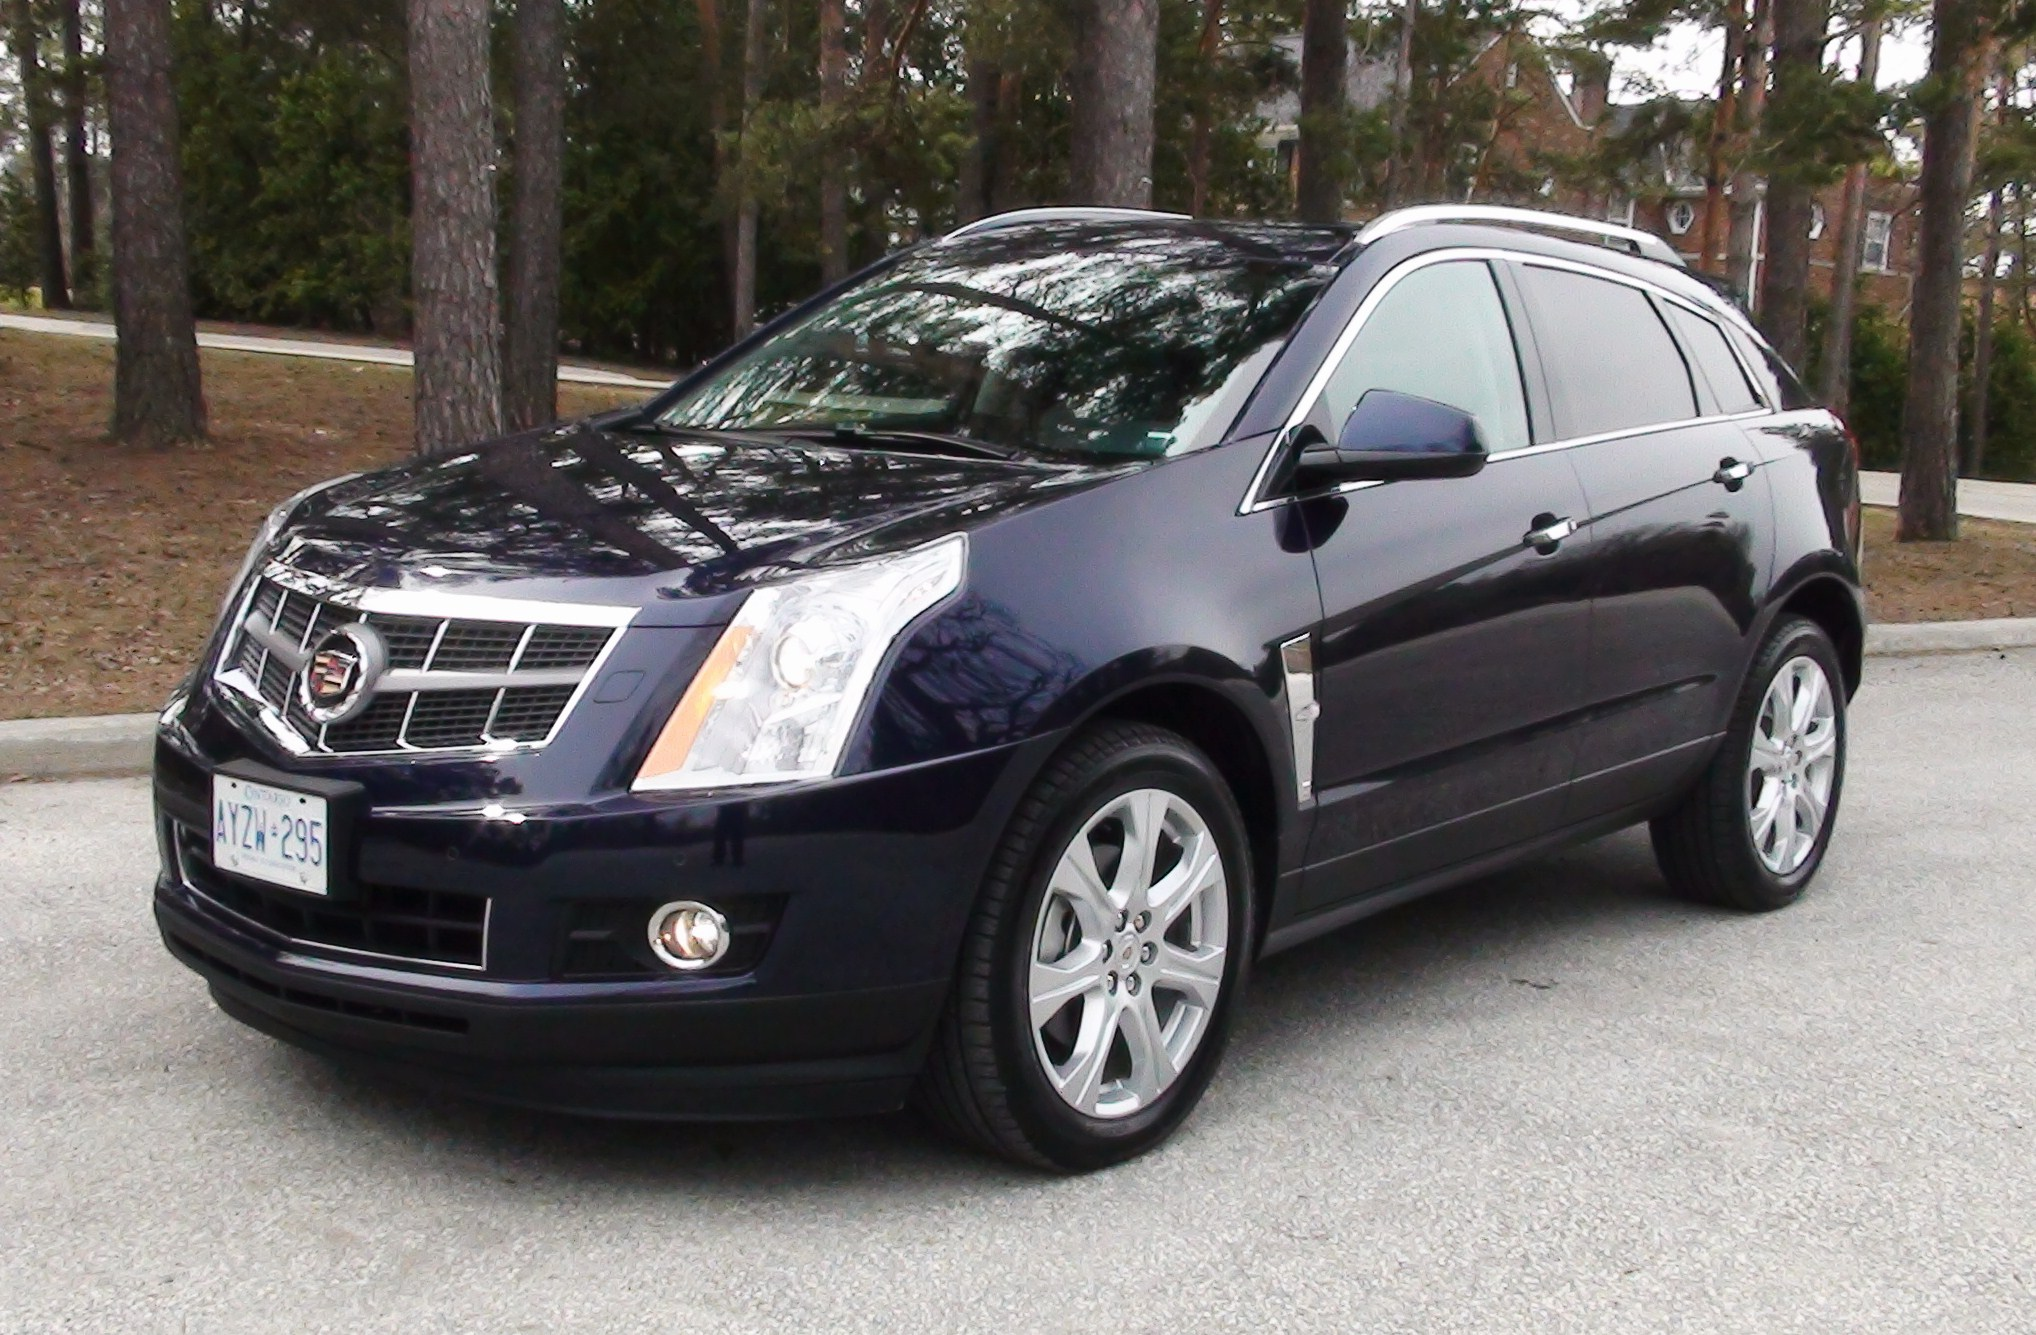 luxury ontario srx sale cars london used for in cadillac awd